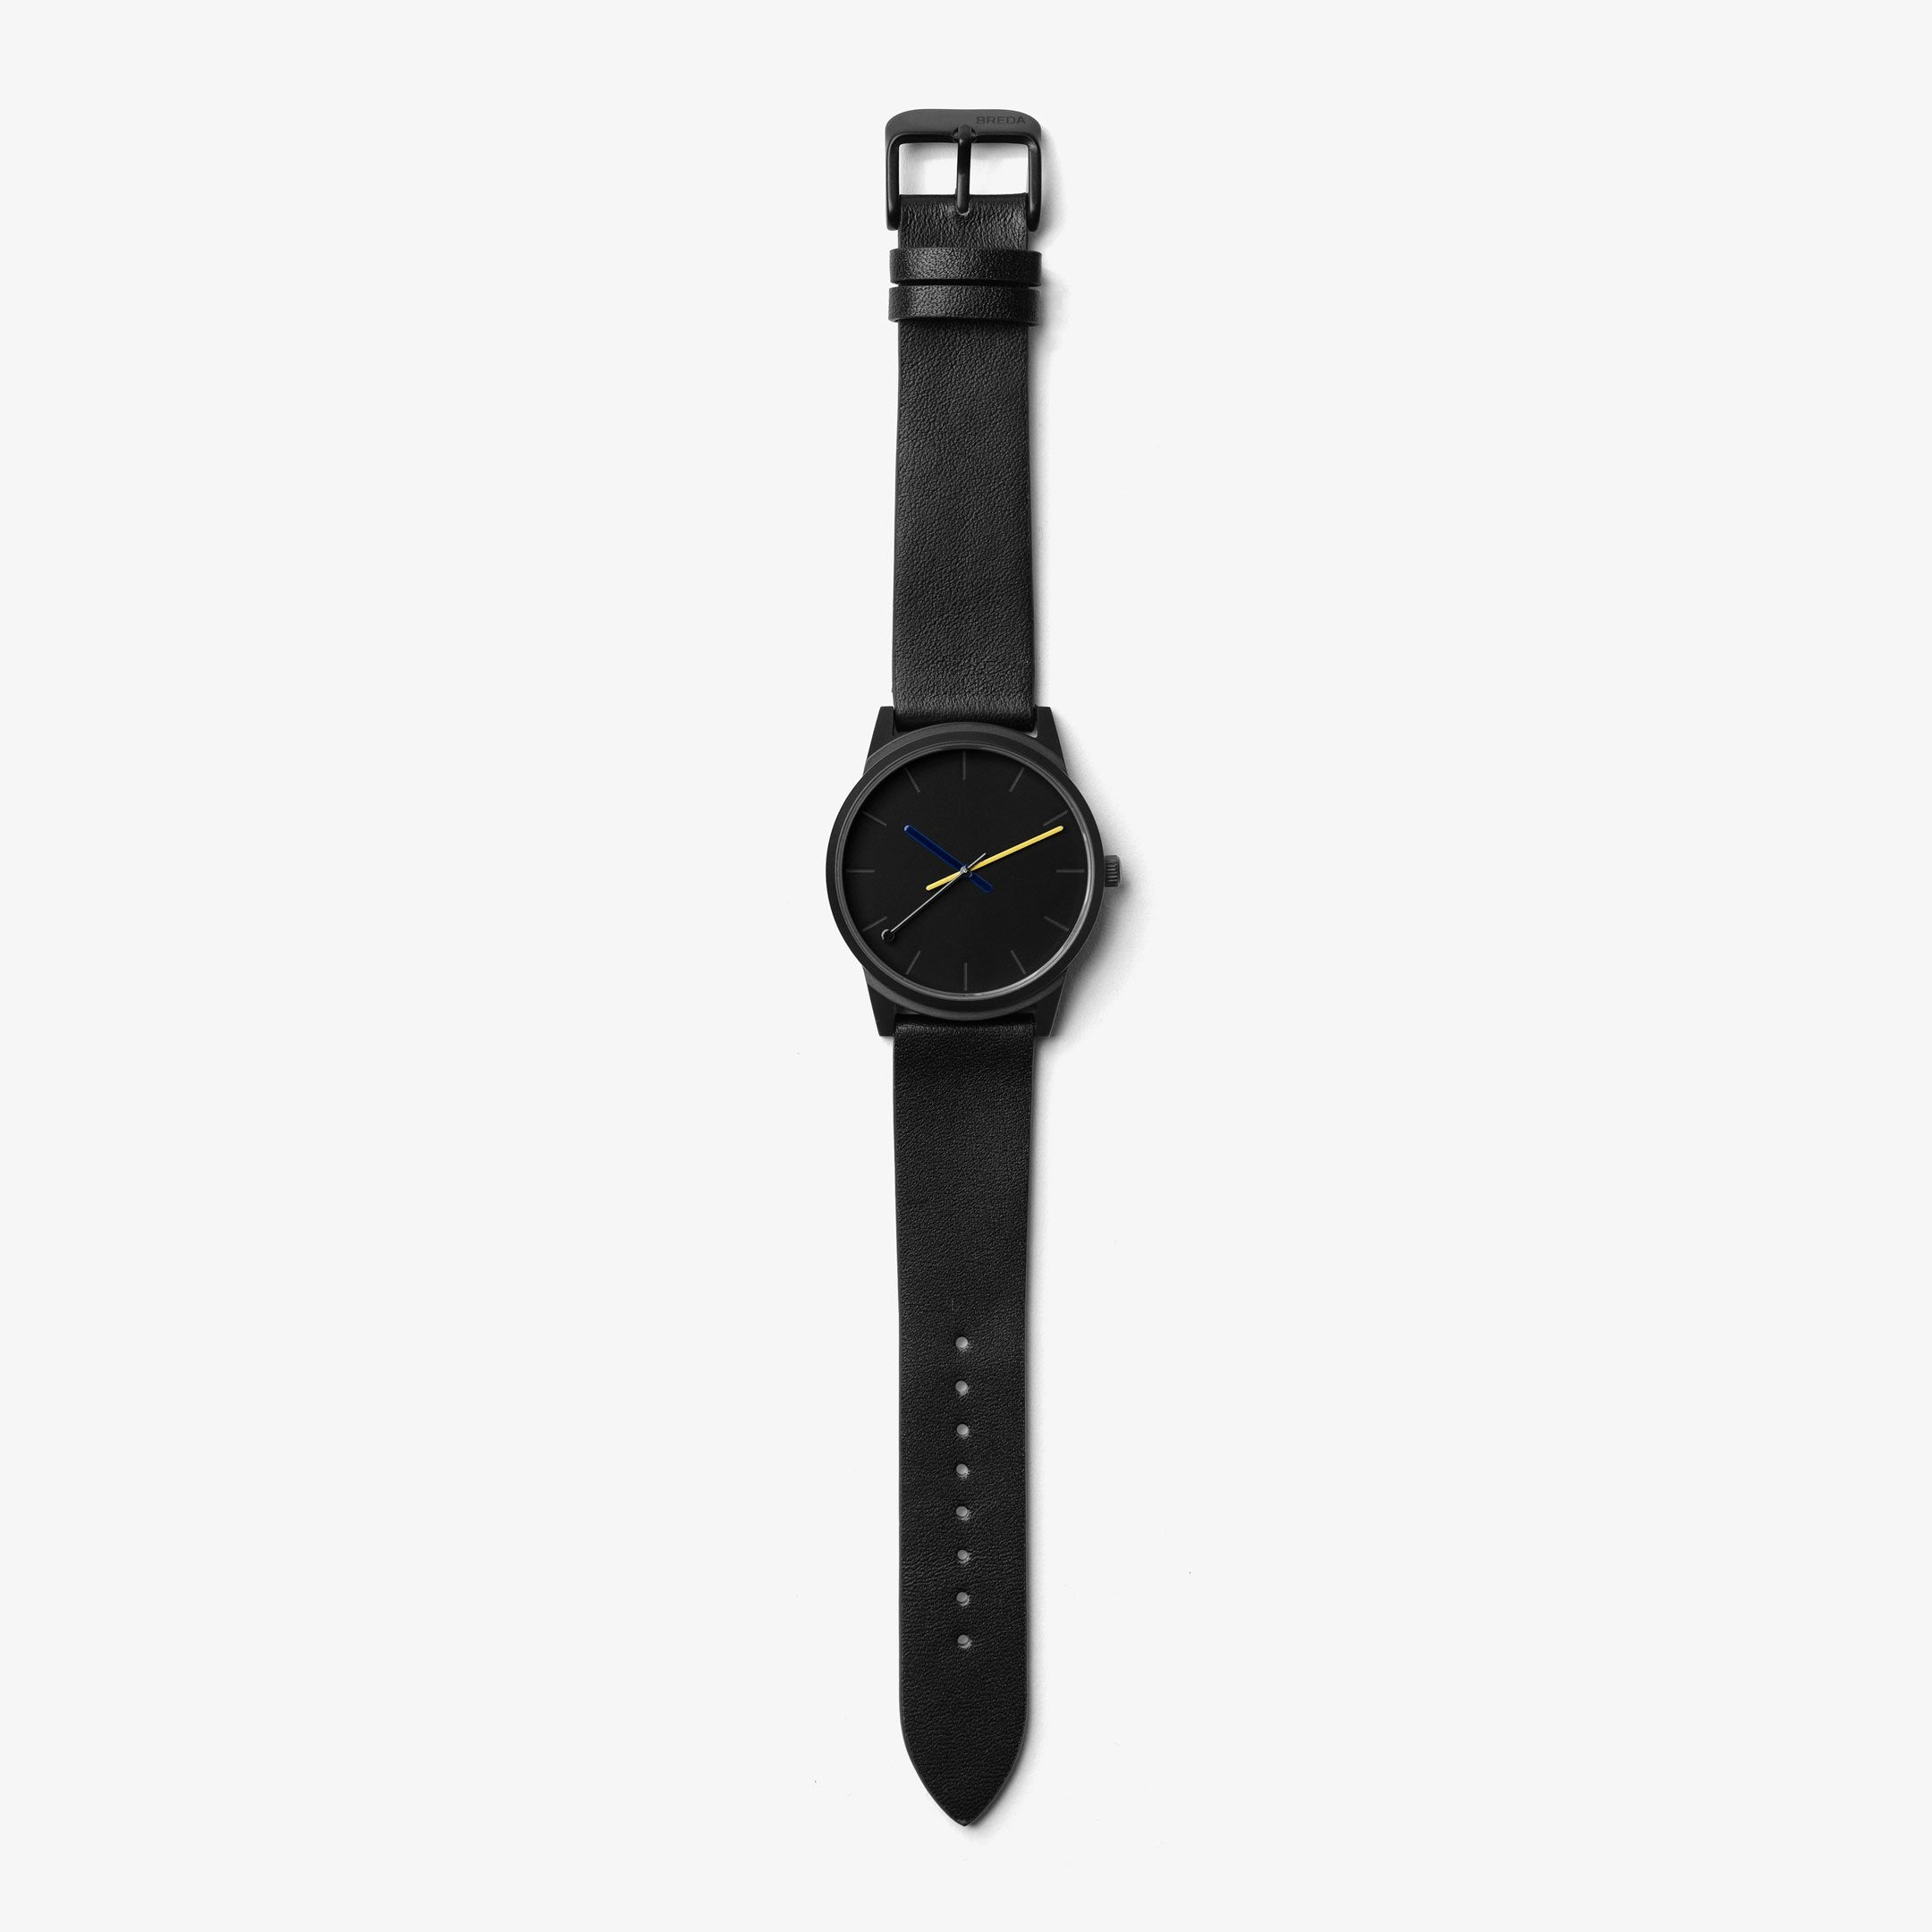 //cdn.shopify.com/s/files/1/0879/6650/products/breda-poketo-5021a-spectra-black-leather-band-collaboration-watch-long_1024x1024.jpg?v=1579907964